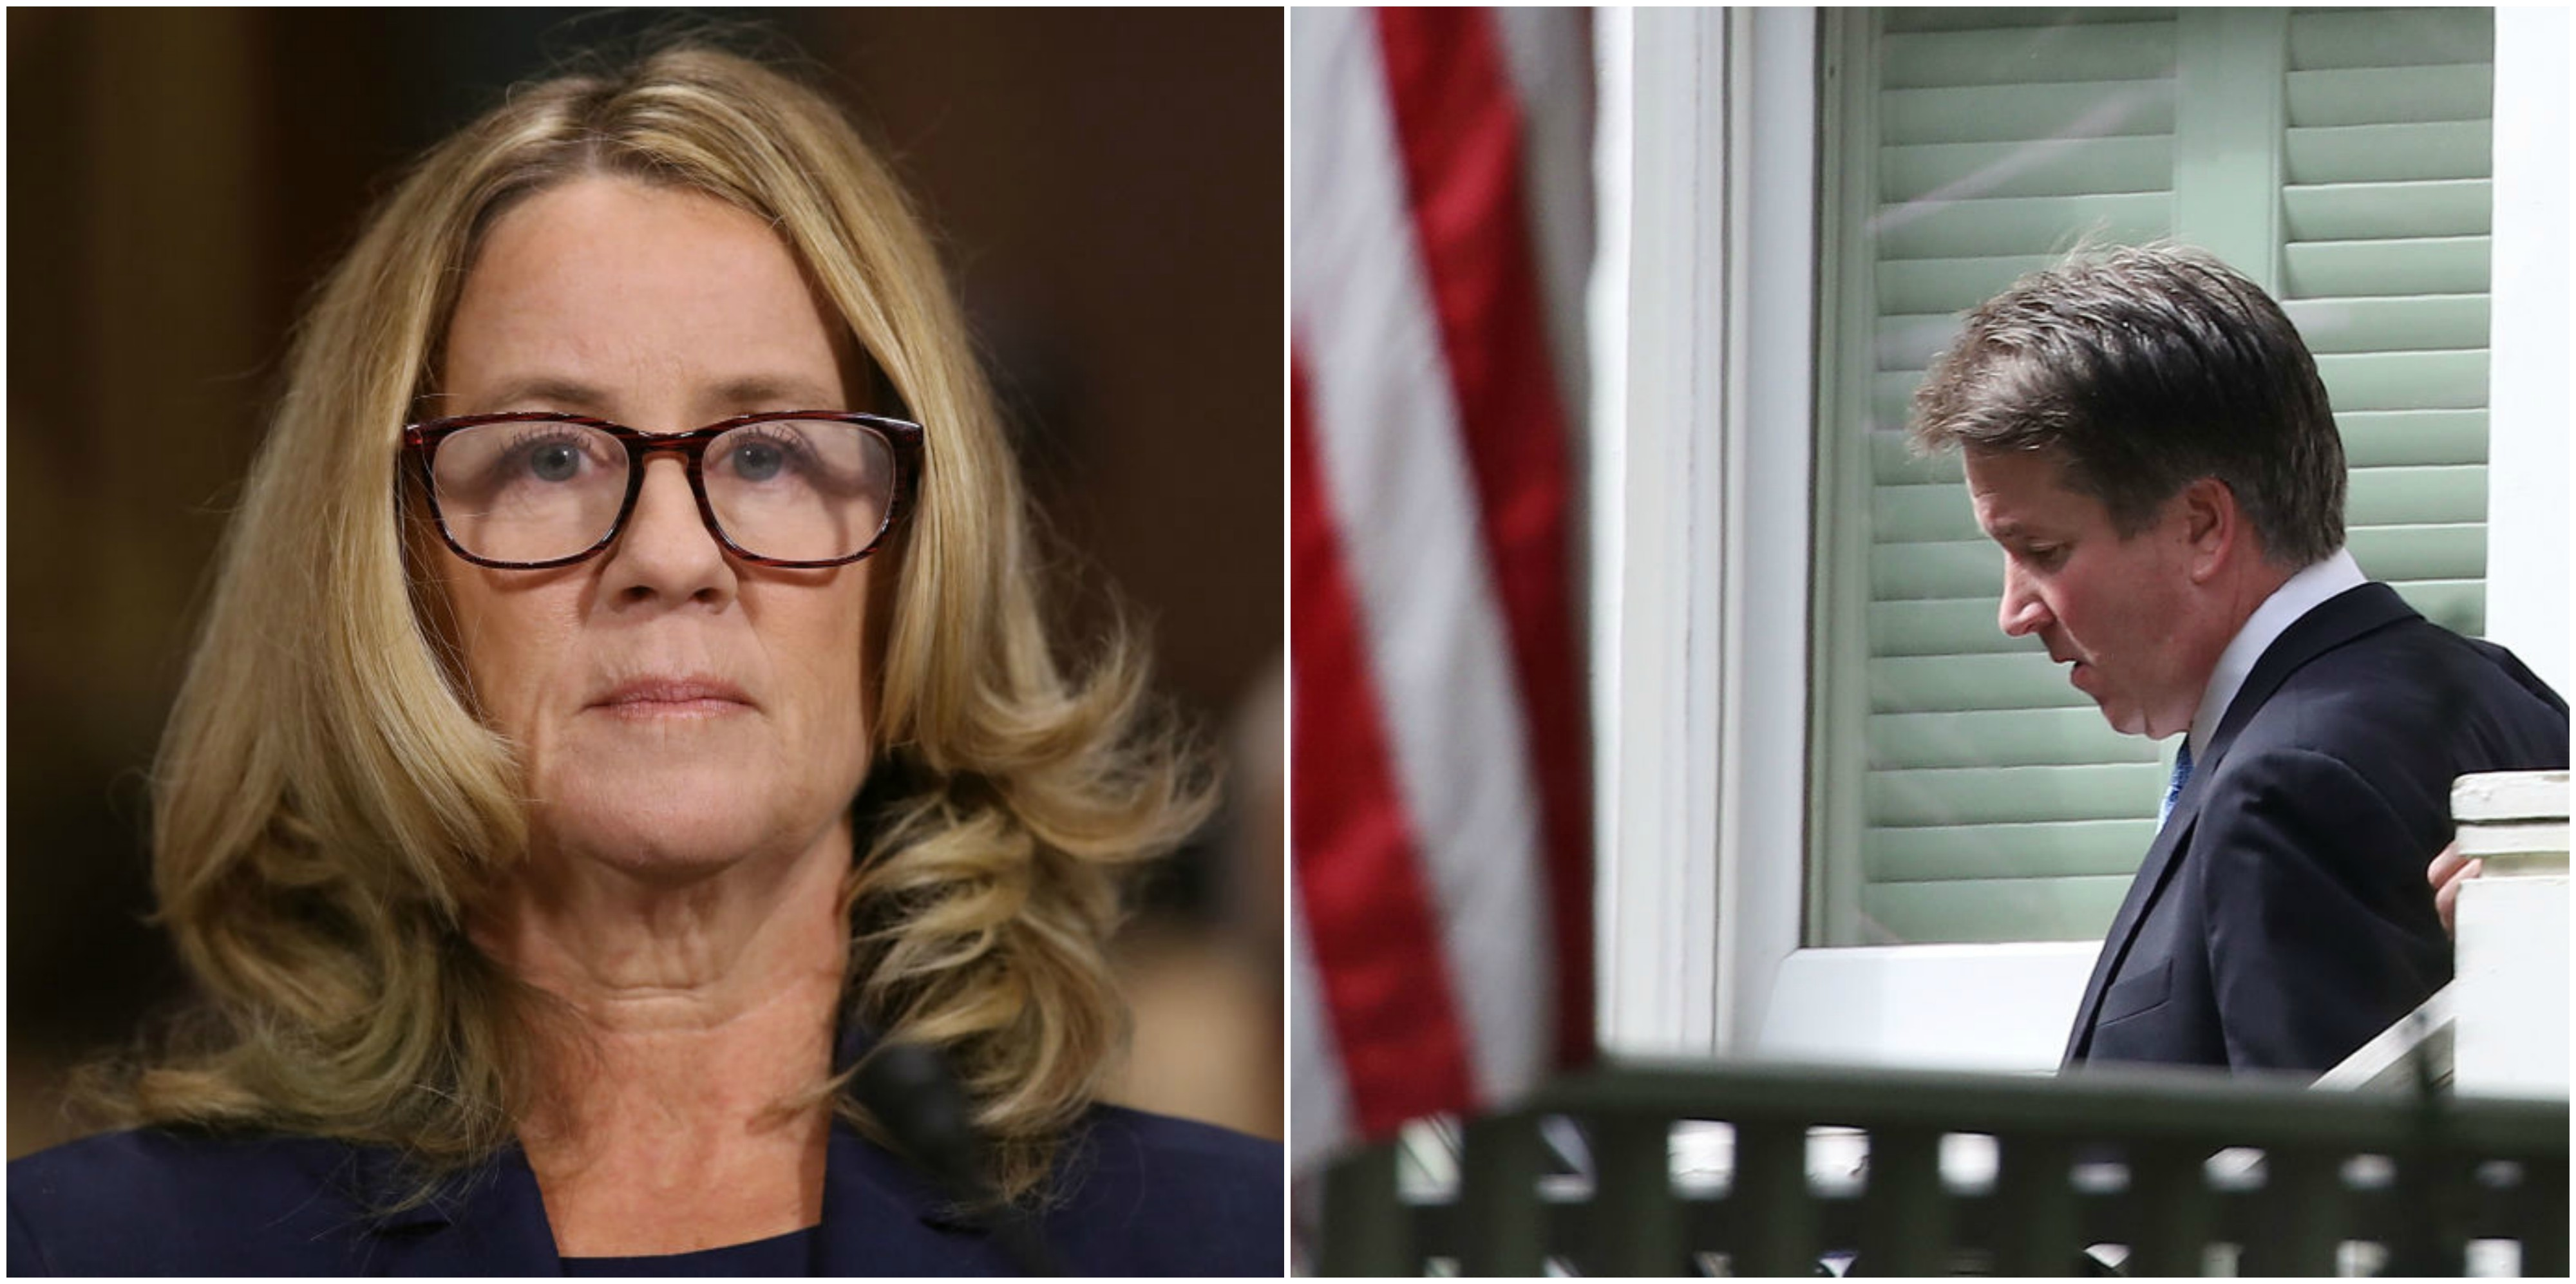 Brett Kavanaugh and Christine Blasey Ford are testifying before the Senate Judiciary Committee—get live updates